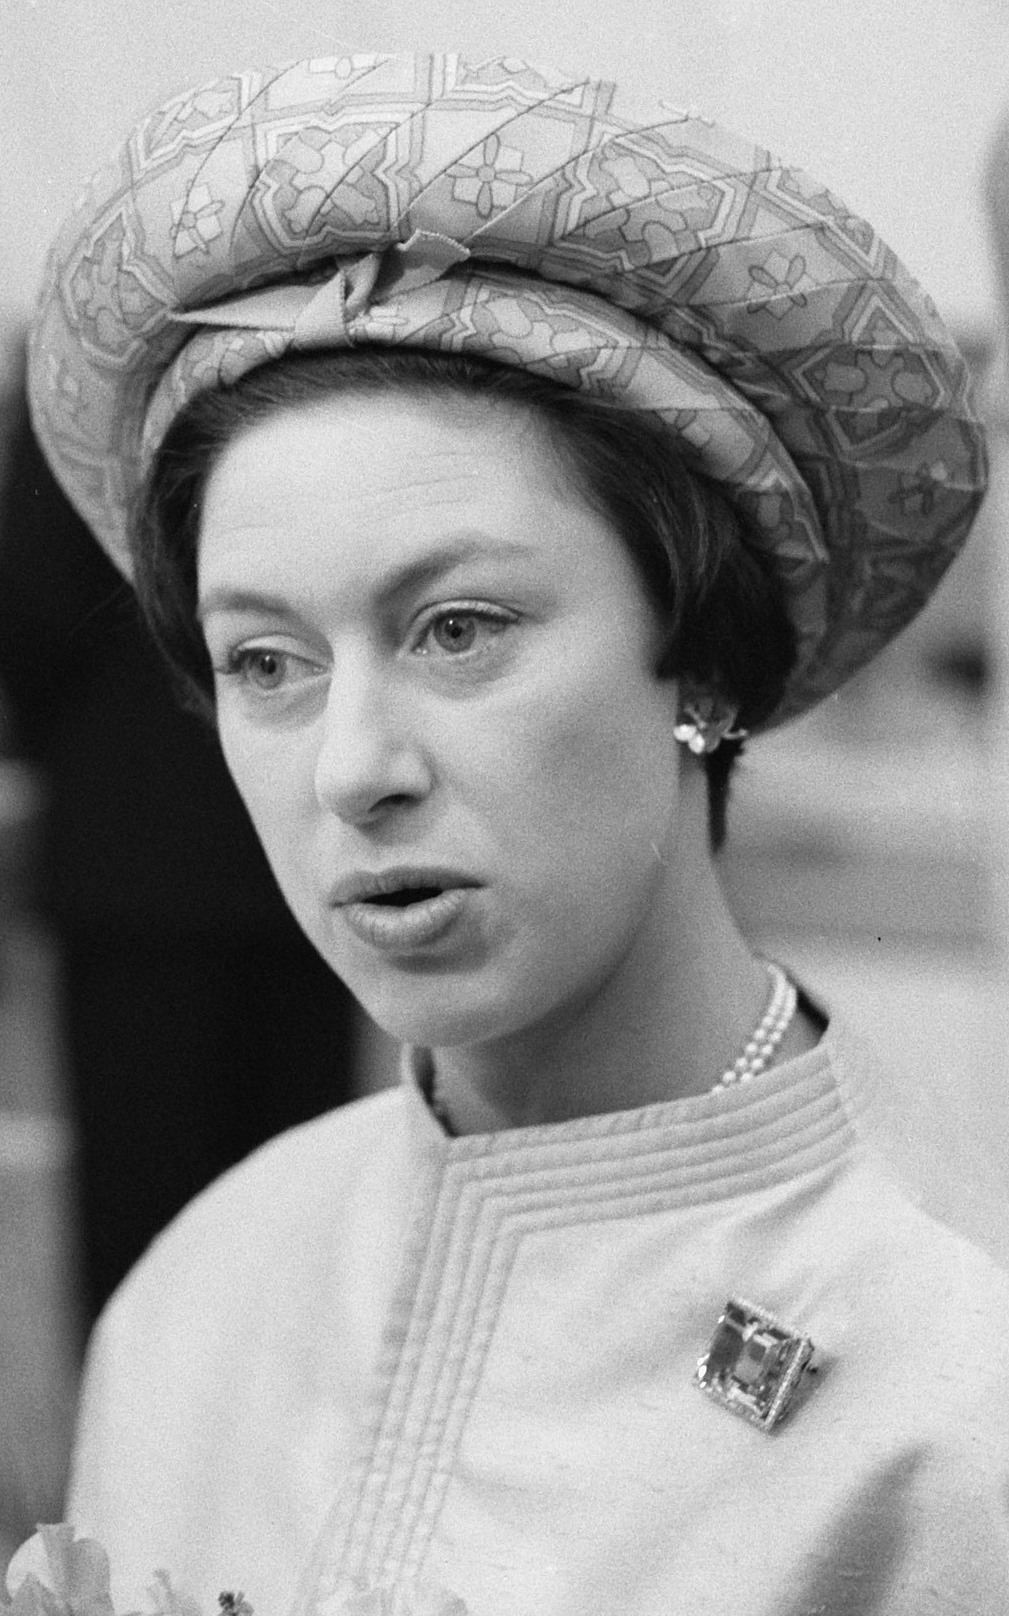 Antony Armstrong Jones 1st Earl Of Snowdon Spouse Princess Margaret Countess Of Snowdon Wikipediam Org